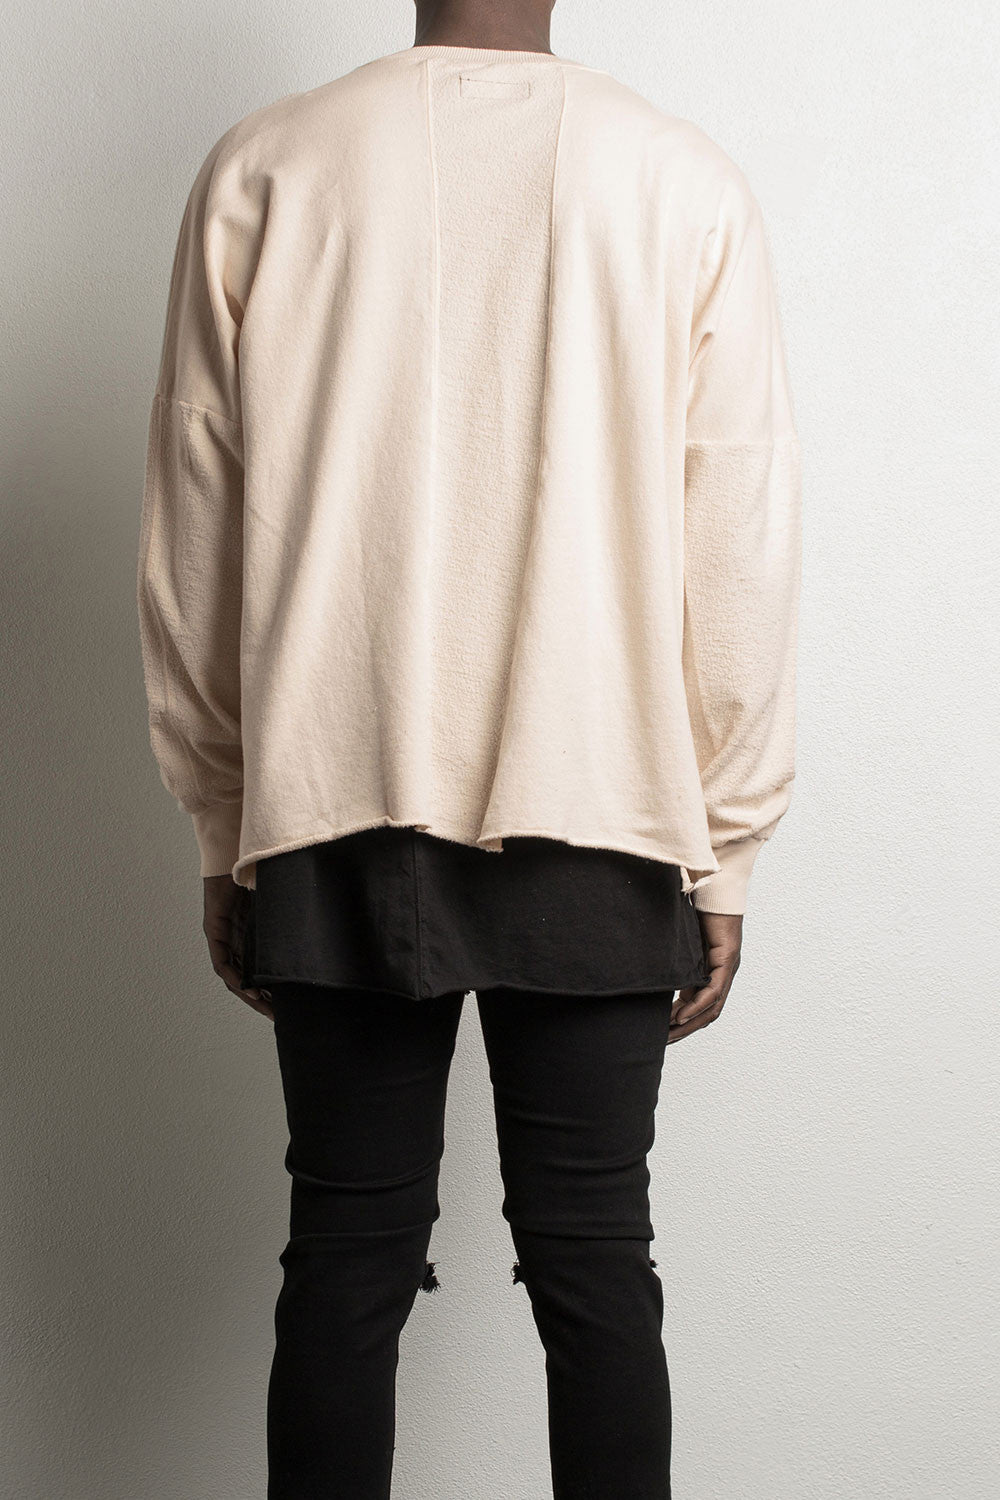 daniel patrick - oversized hero sweat - COMMON  - 2